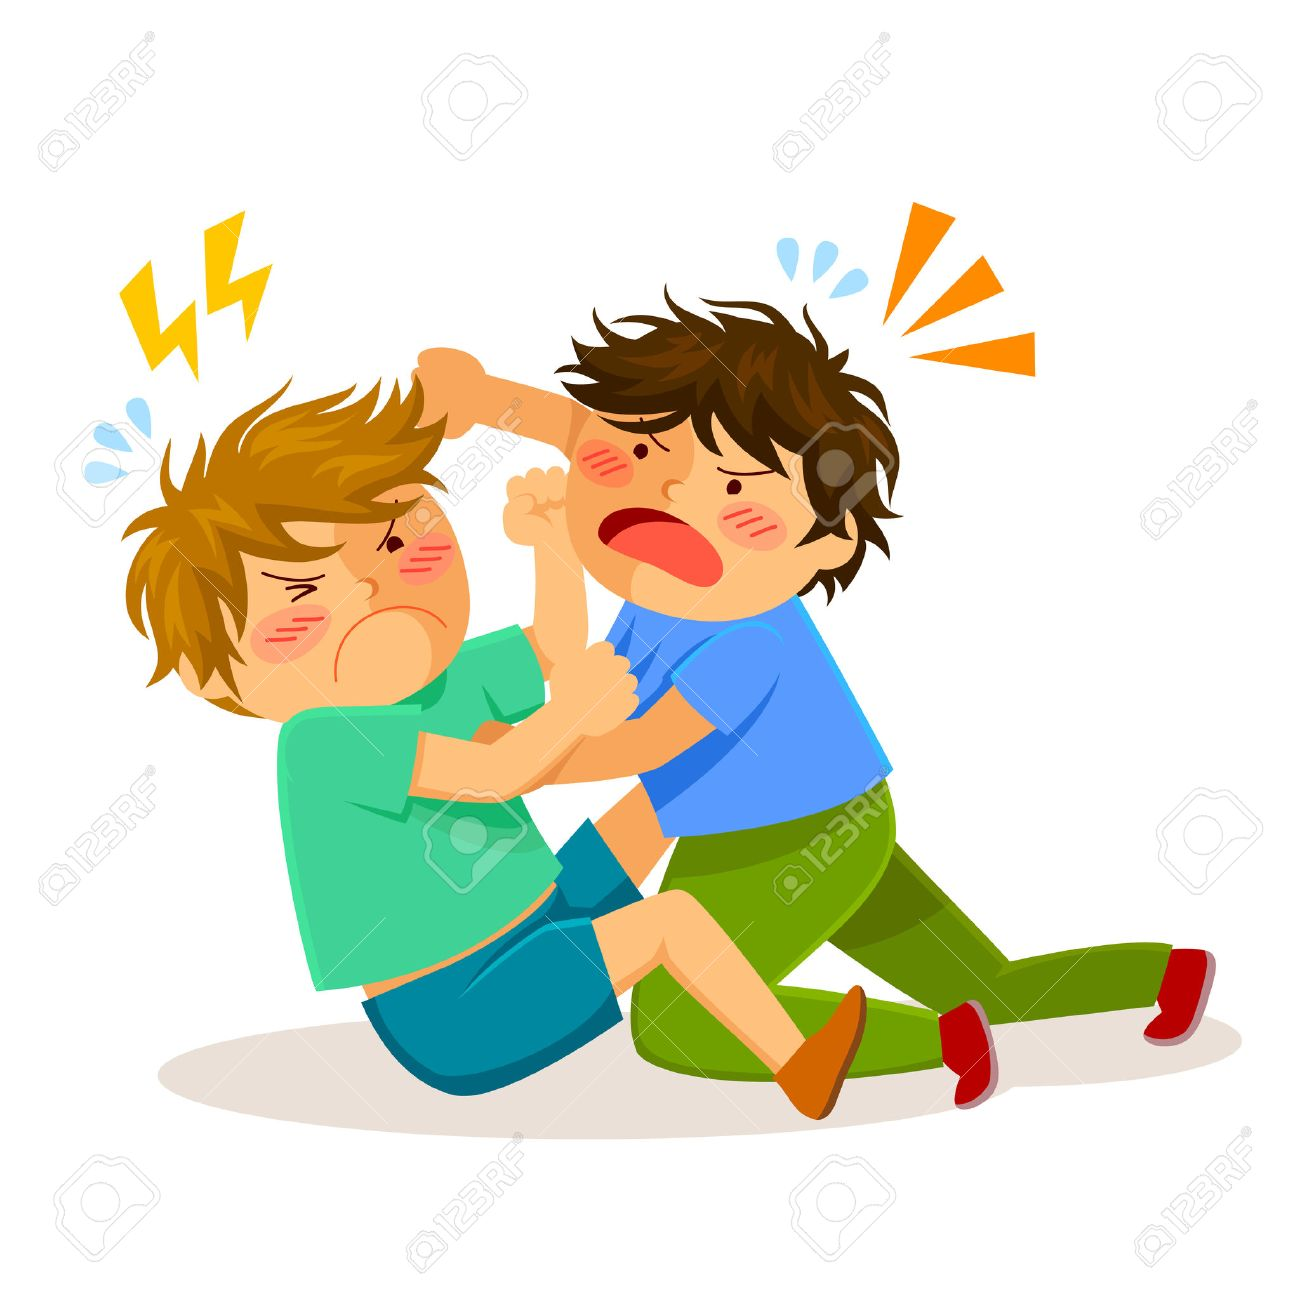 Kids Hitting Each Other Clipart.